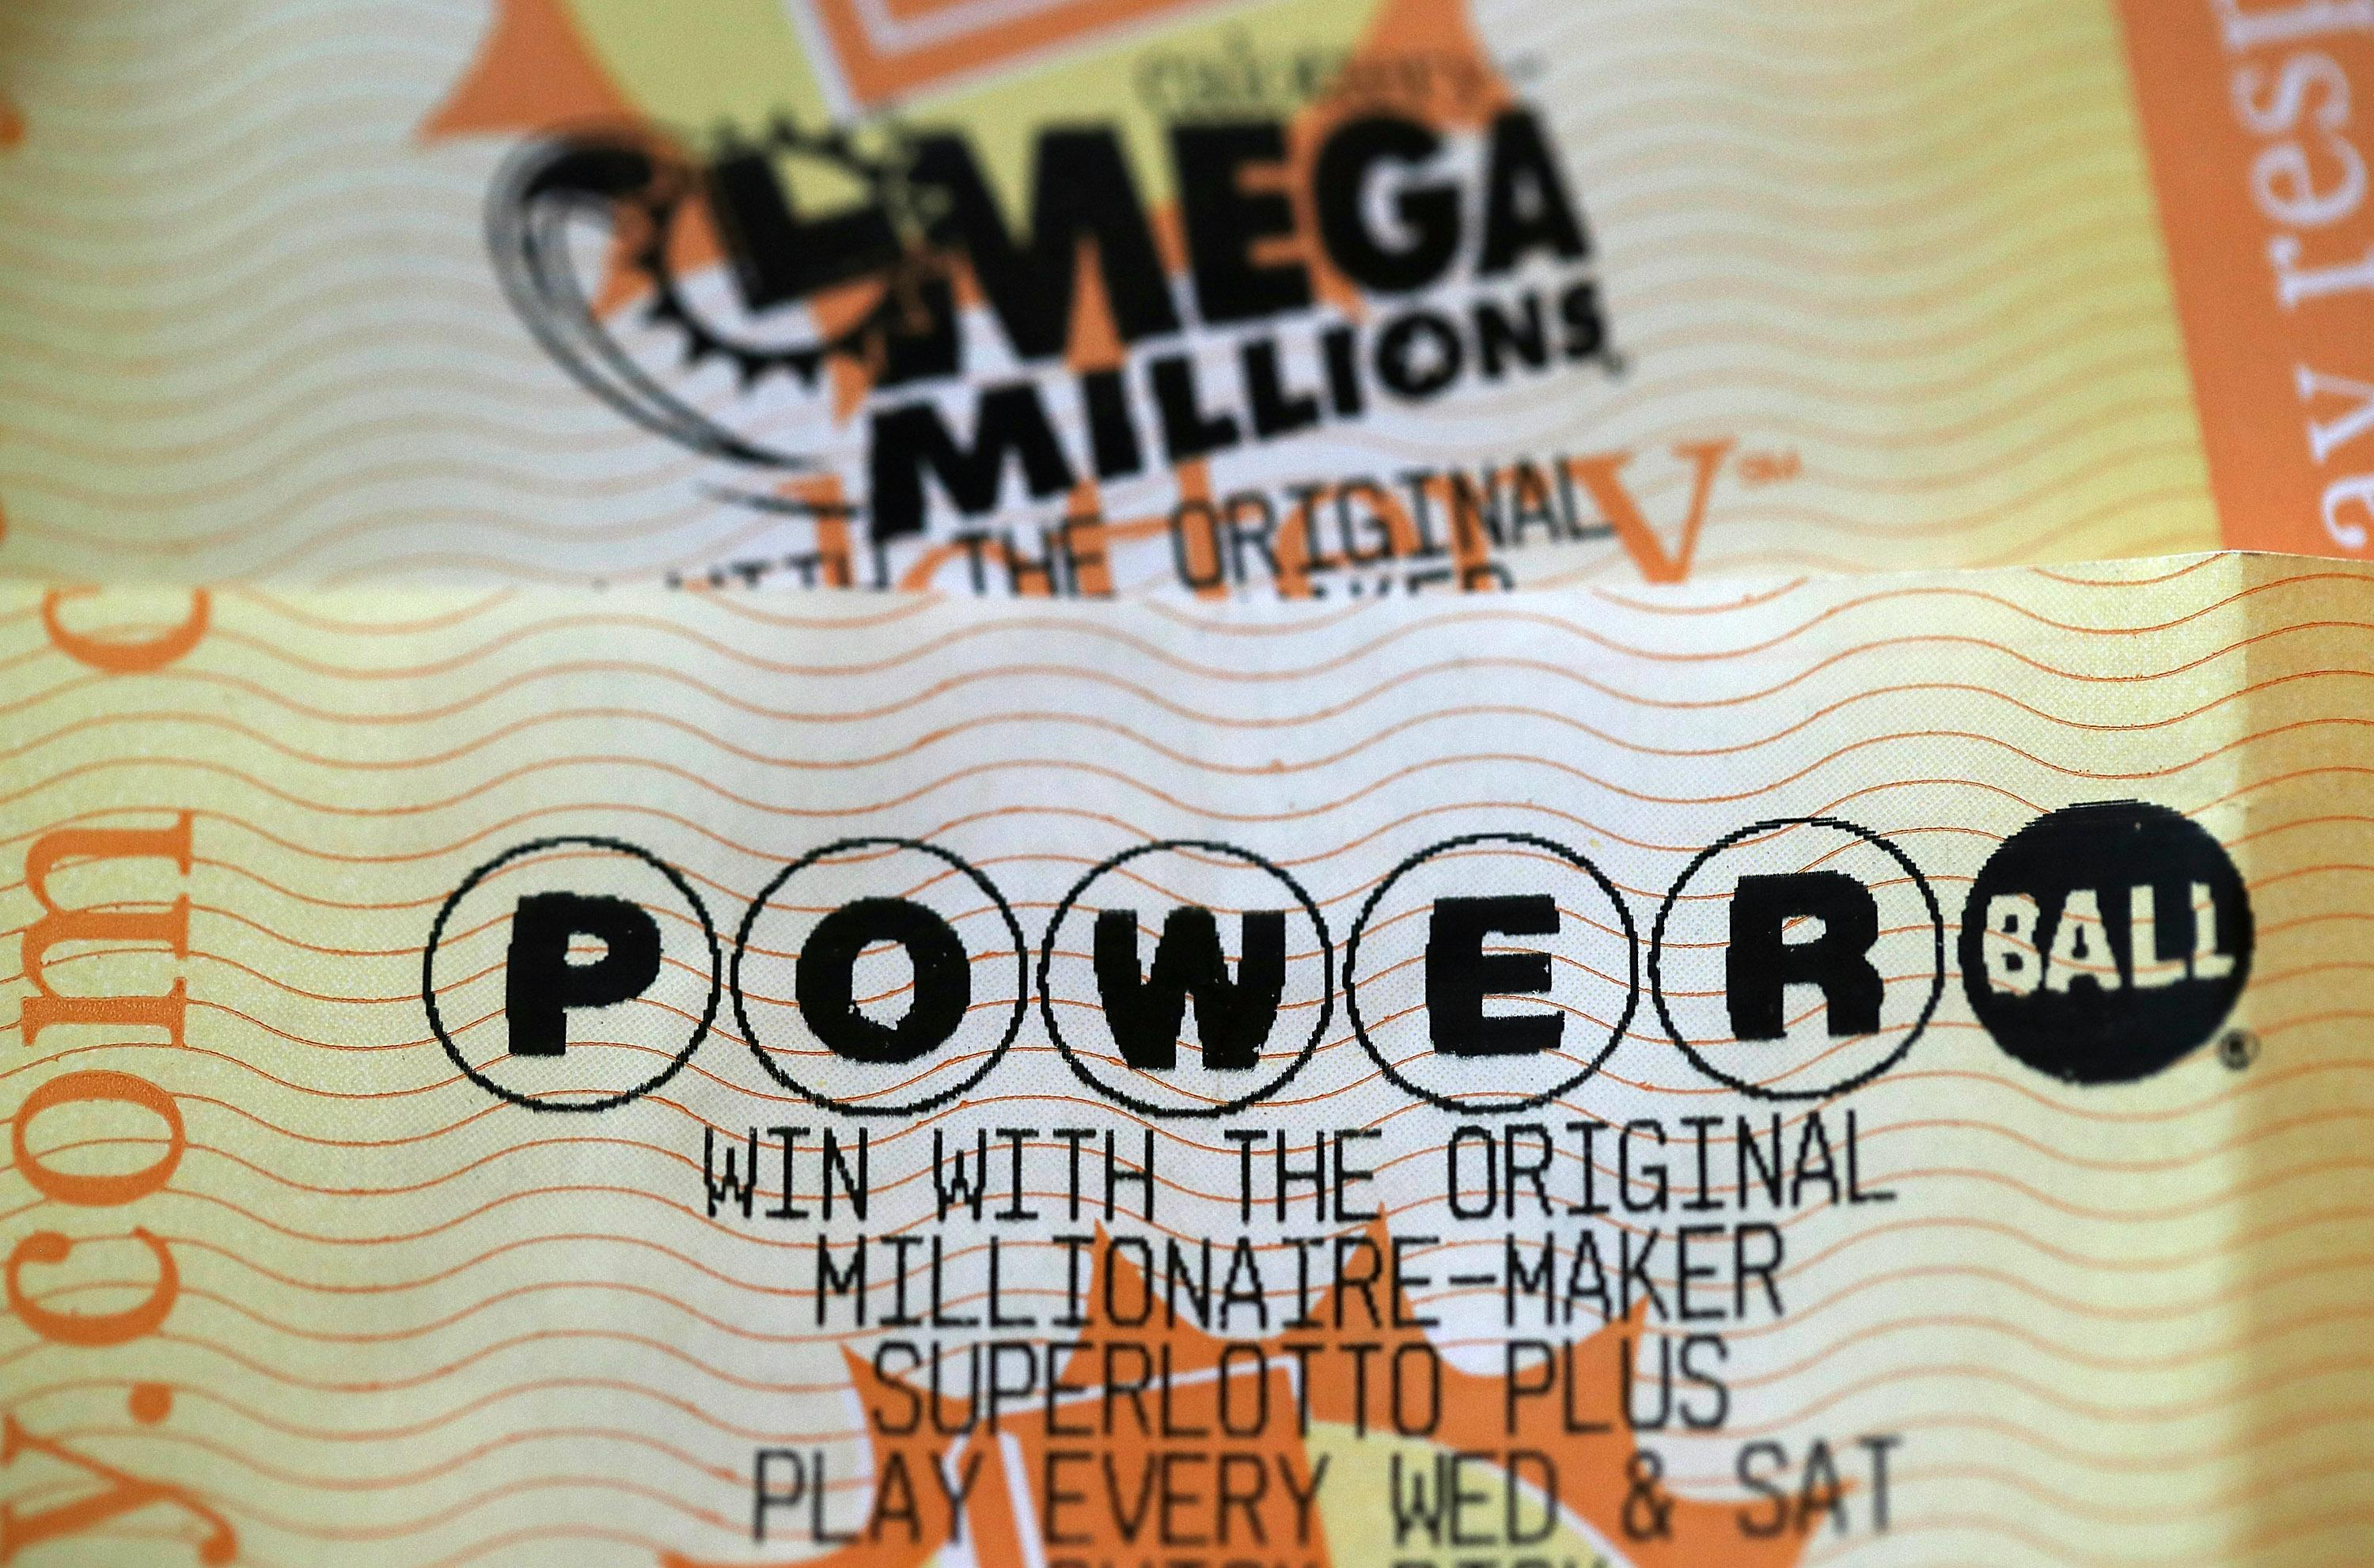 With no winner, Powerball jackpot soars to $550 million